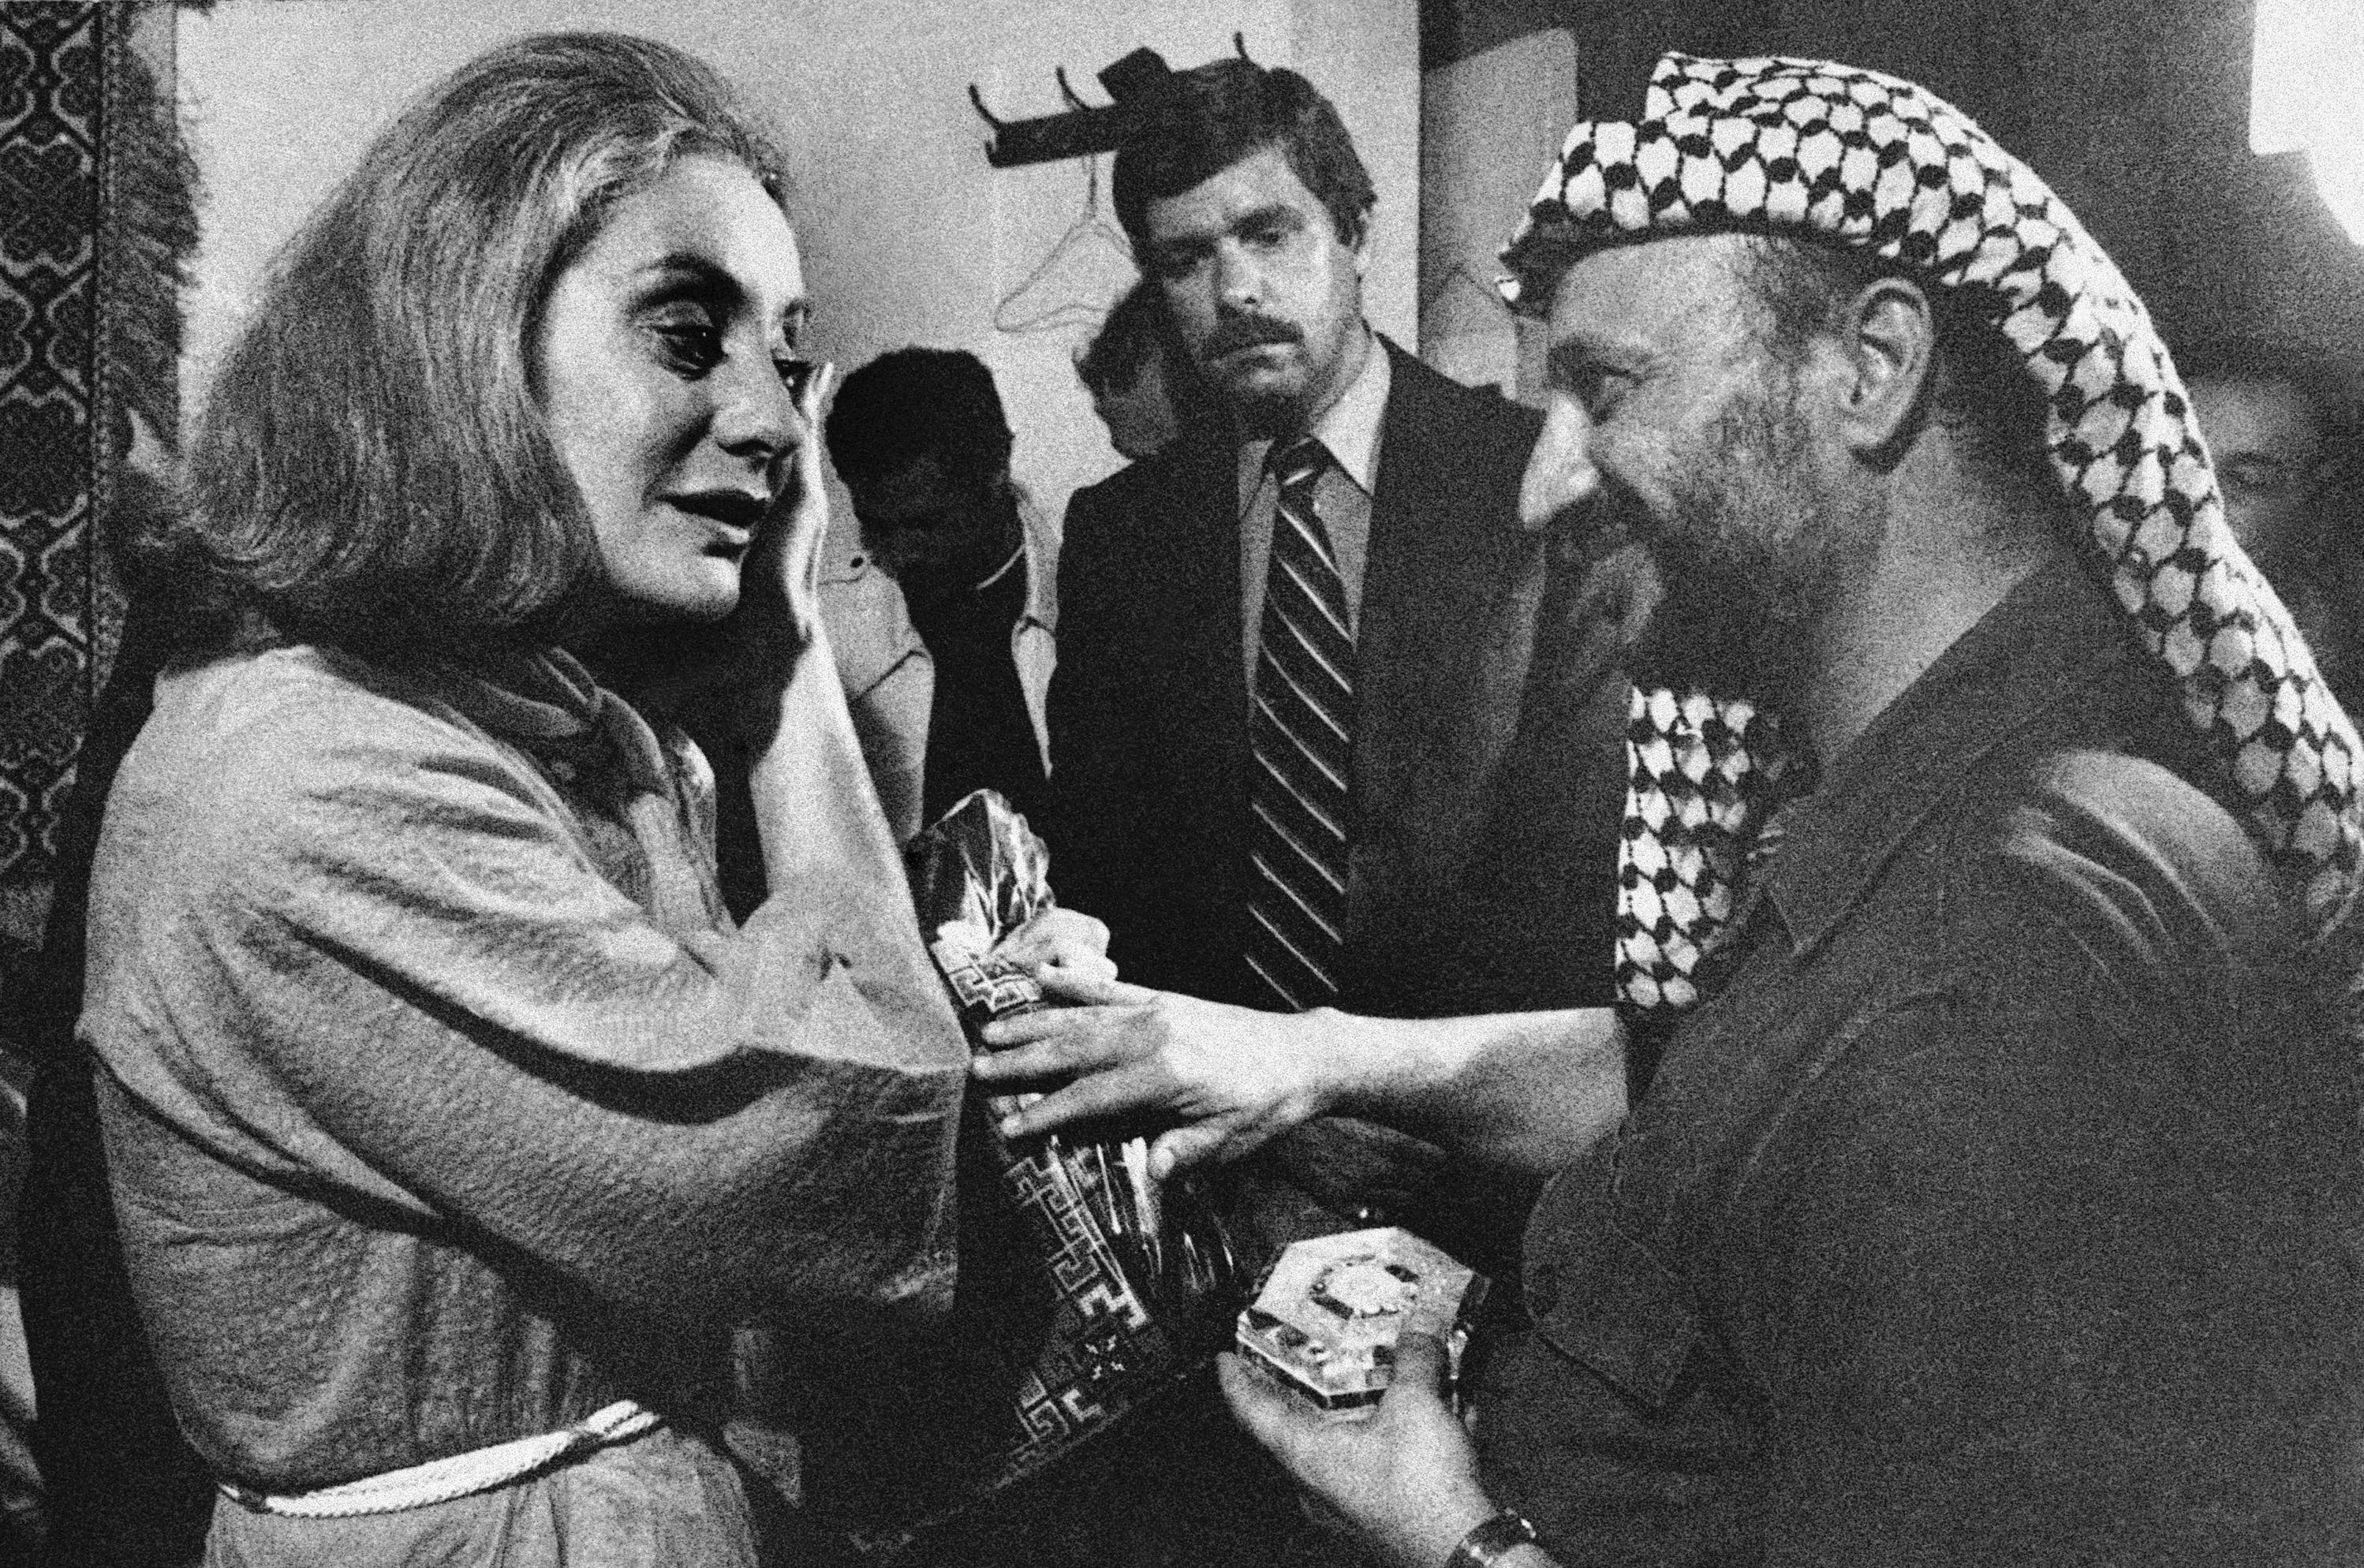 Palestinian leader Yasser Arafat, right, presented ABC's Barbara Walters with a handmade dress and mother-of-pearl box following an interview with him in Beirut on Sept. 21, 1977.